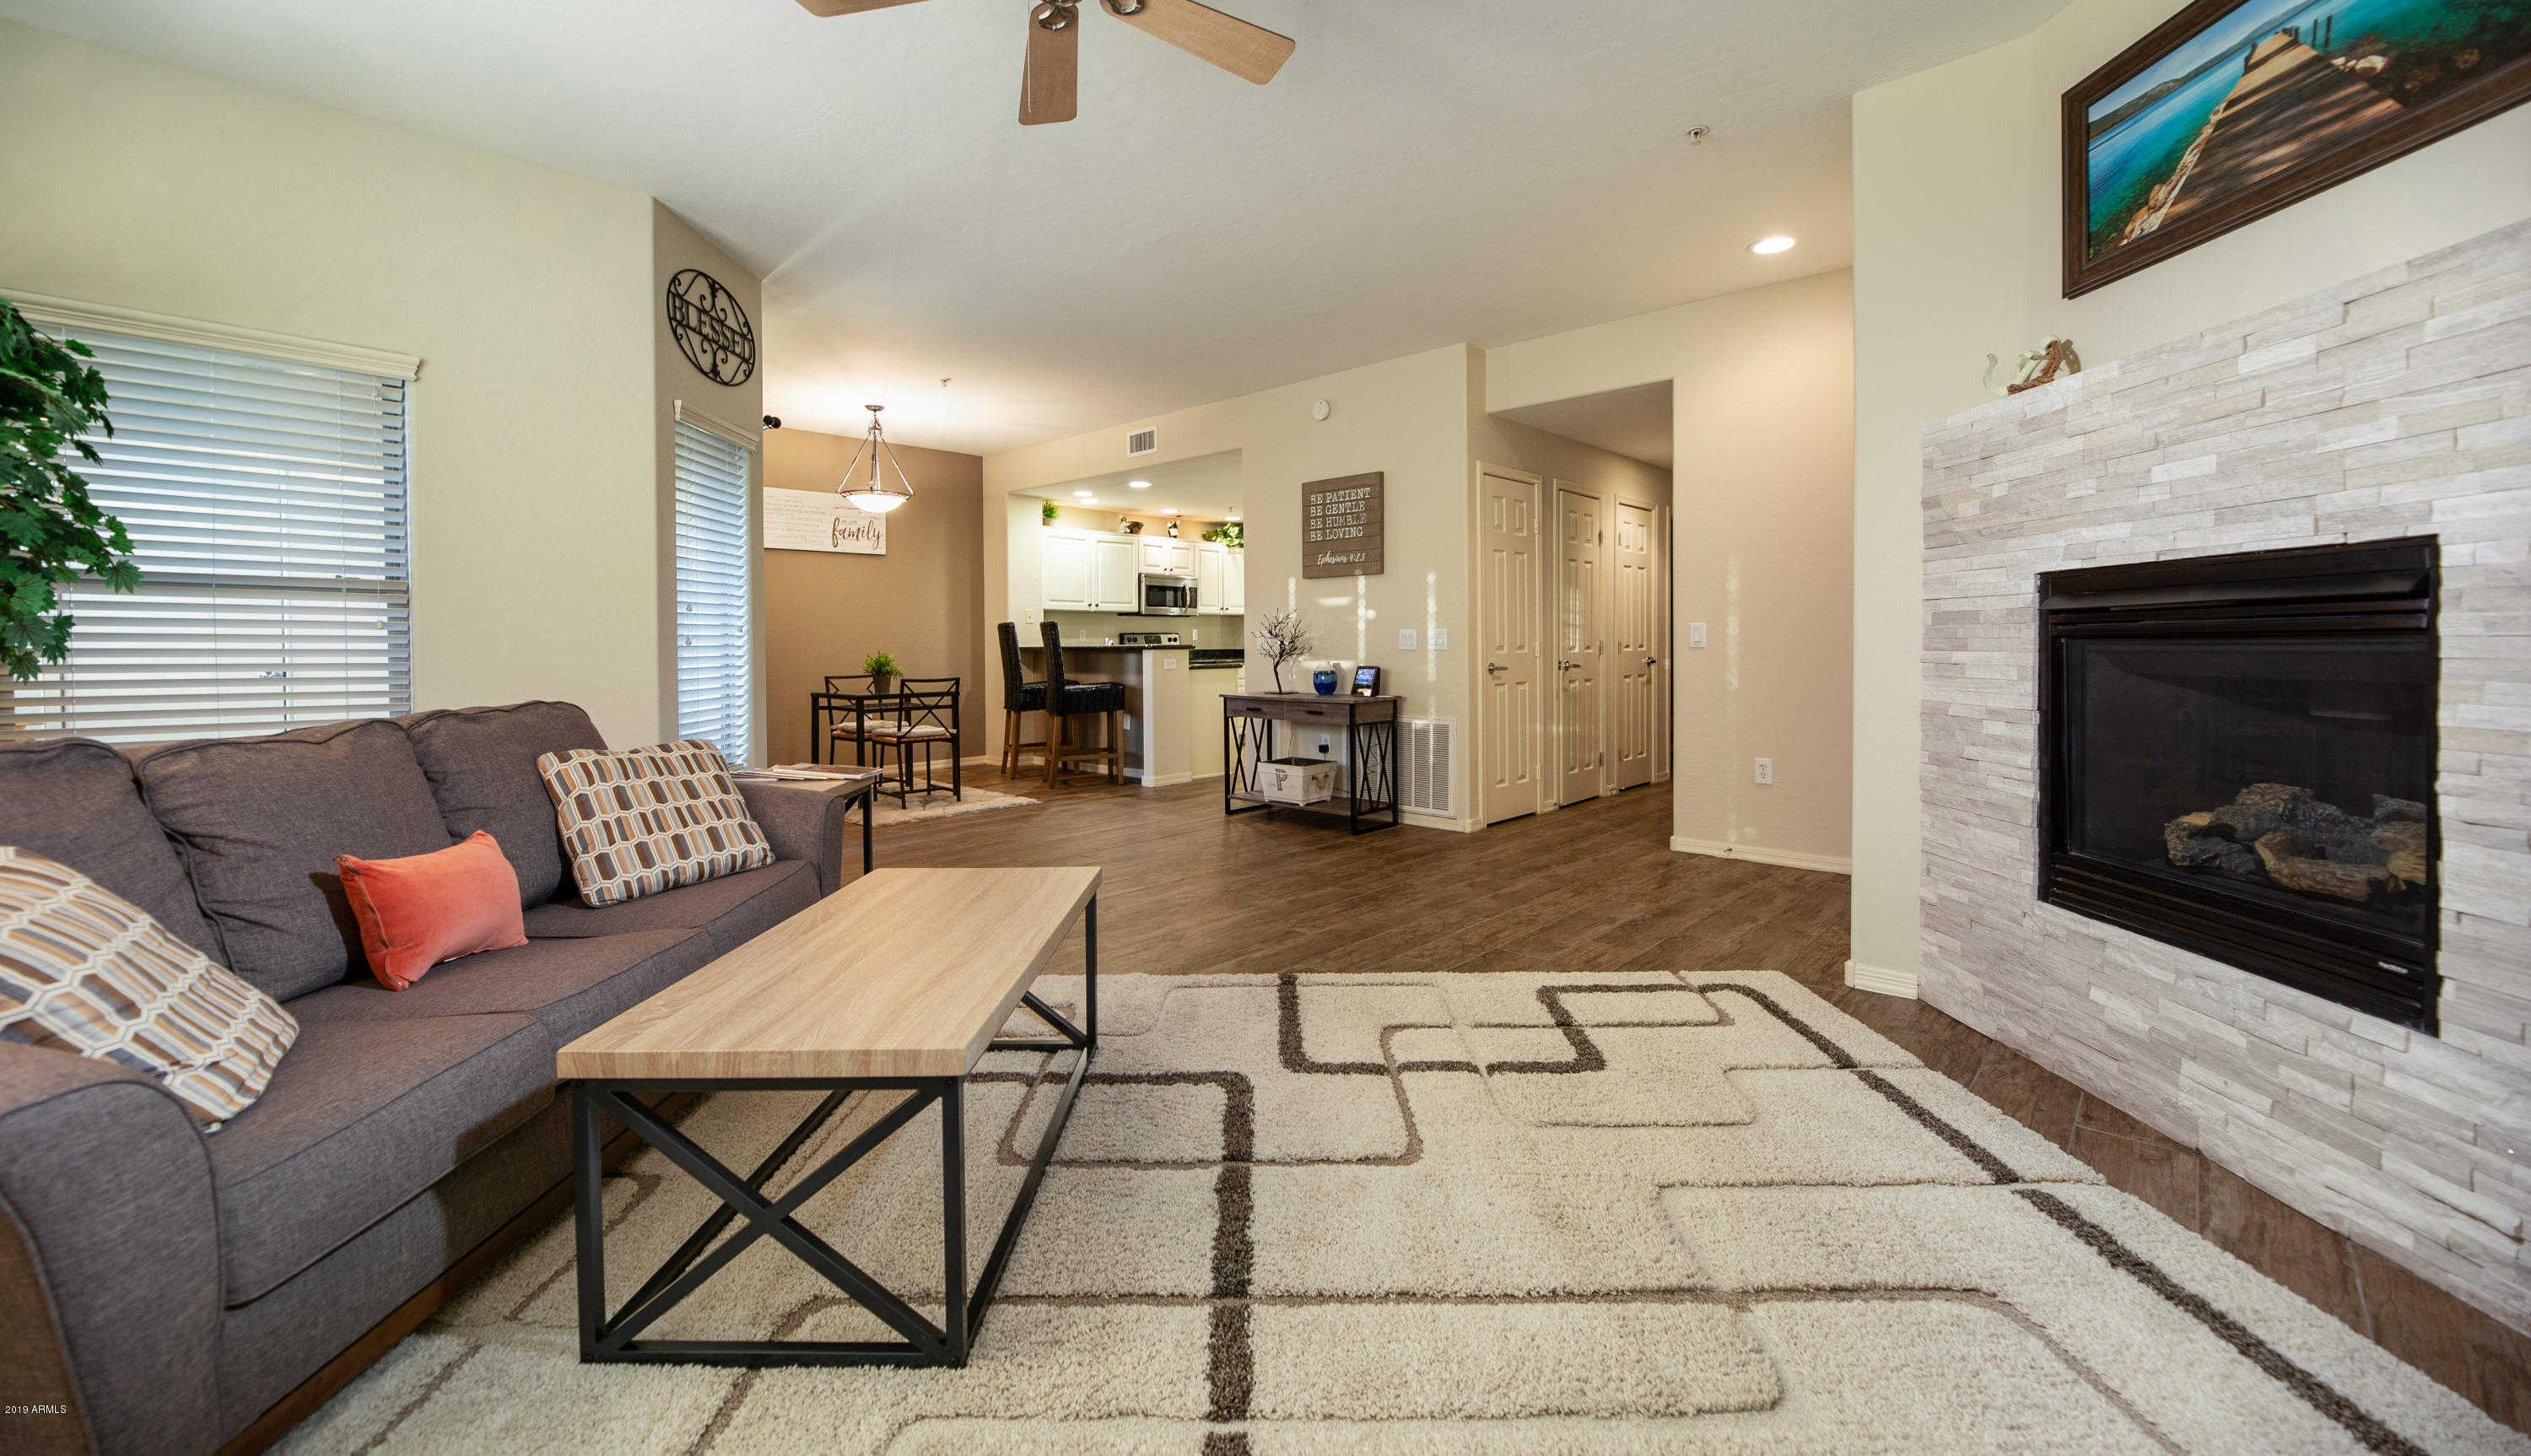 $315,000 - 2Br/2Ba -  for Sale in Vintage At Grayhawk, Scottsdale